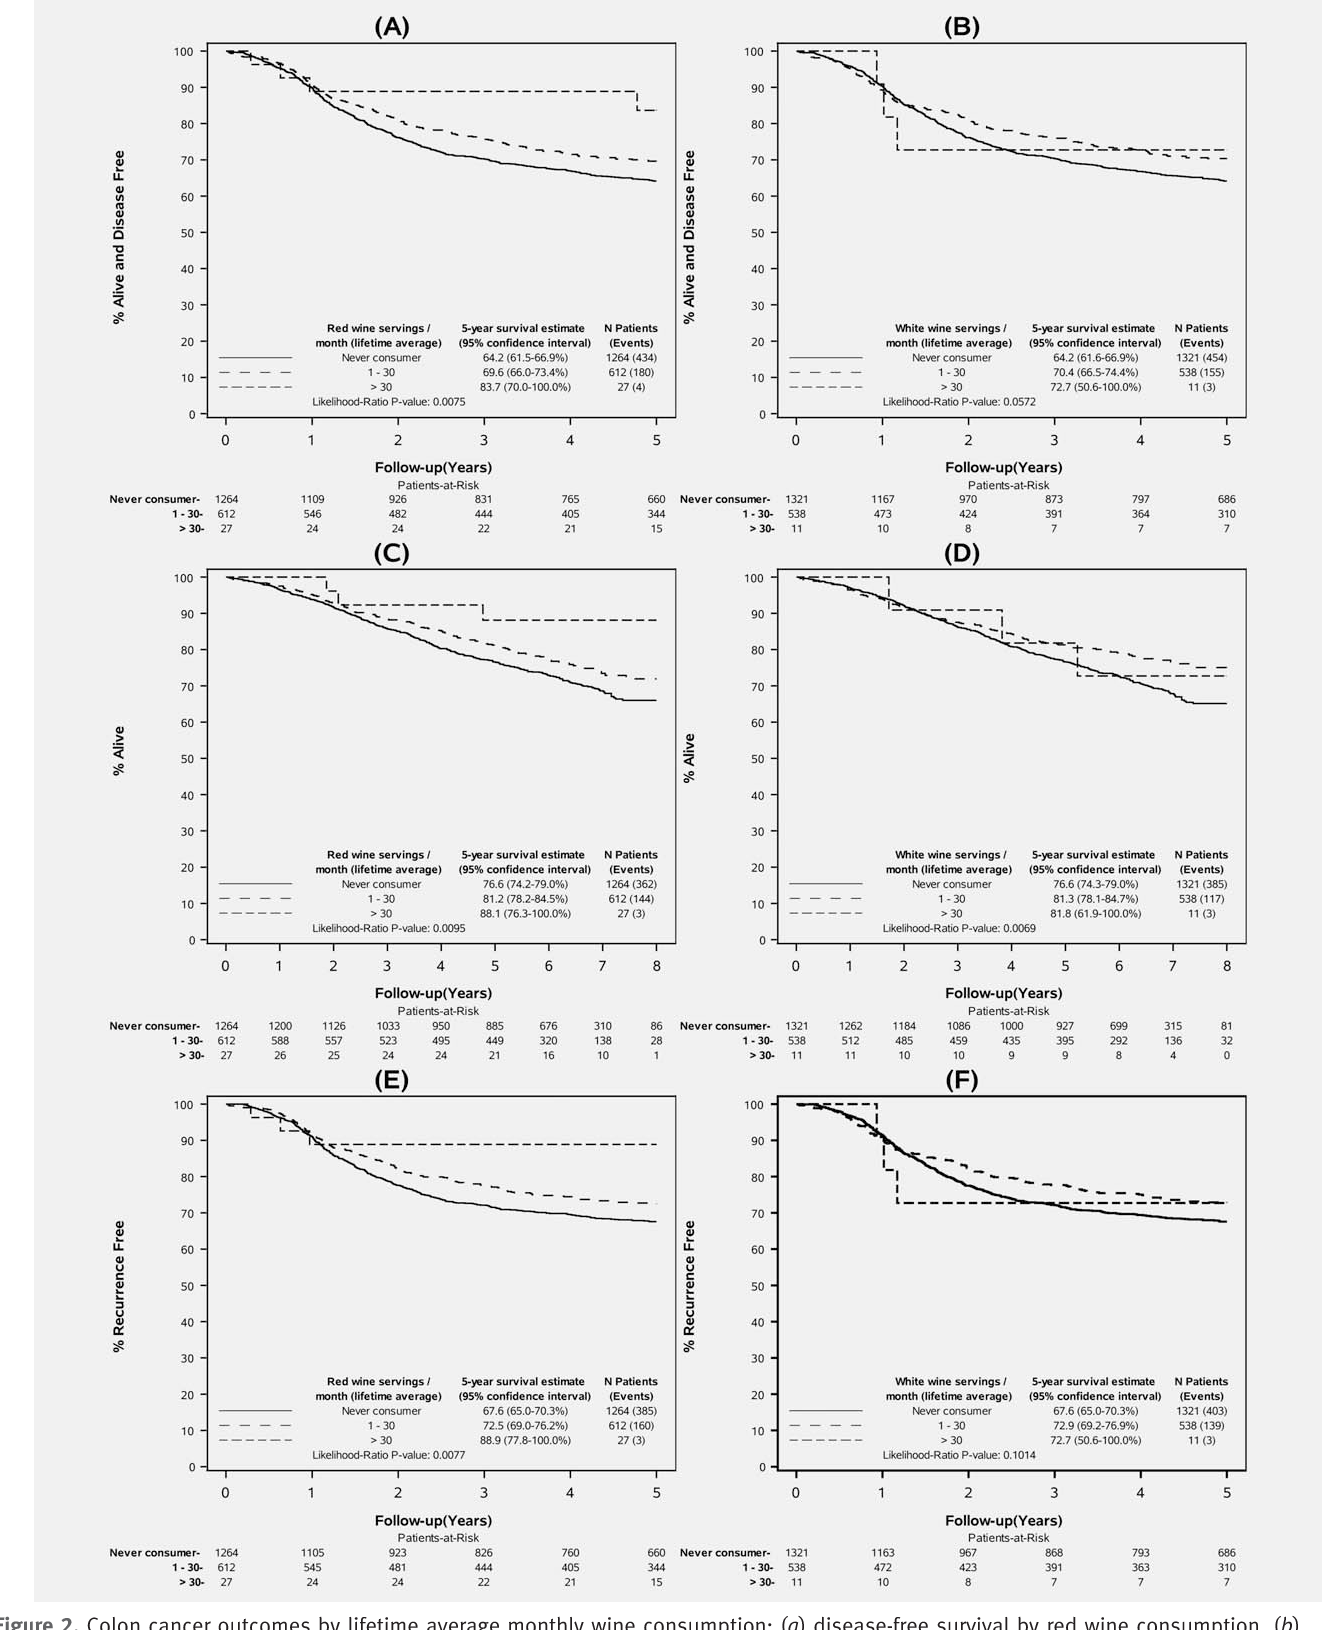 Table 1 From Alcohol Consumption And Colon Cancer Prognosis Among Participants In North Central Cancer Treatment Group Phase Iii Trial N0147 Semantic Scholar